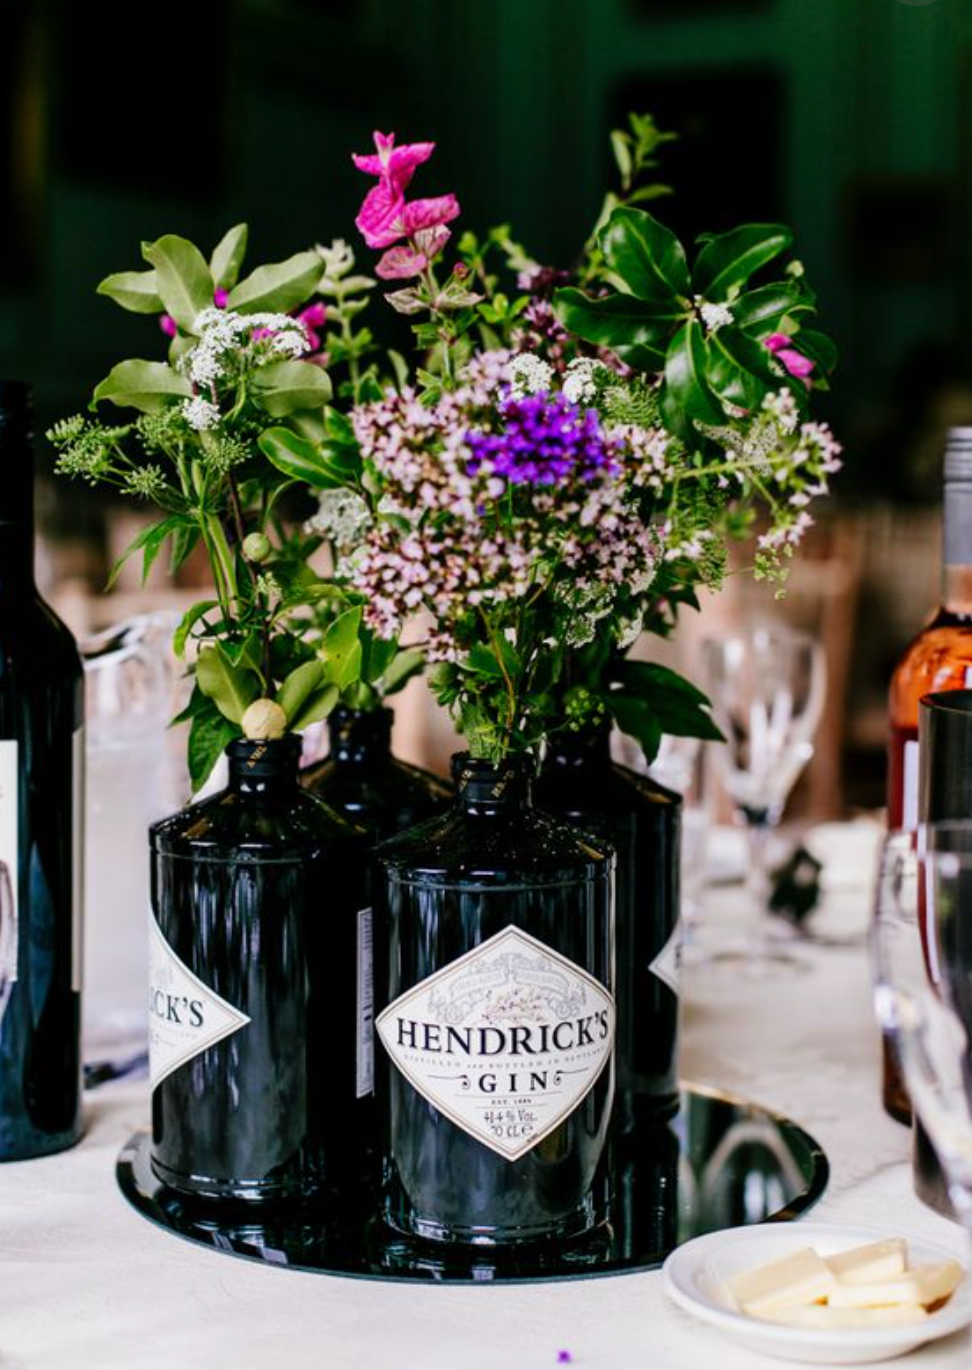 Hendricks Gin centrepieces for a wedding with wildflowers